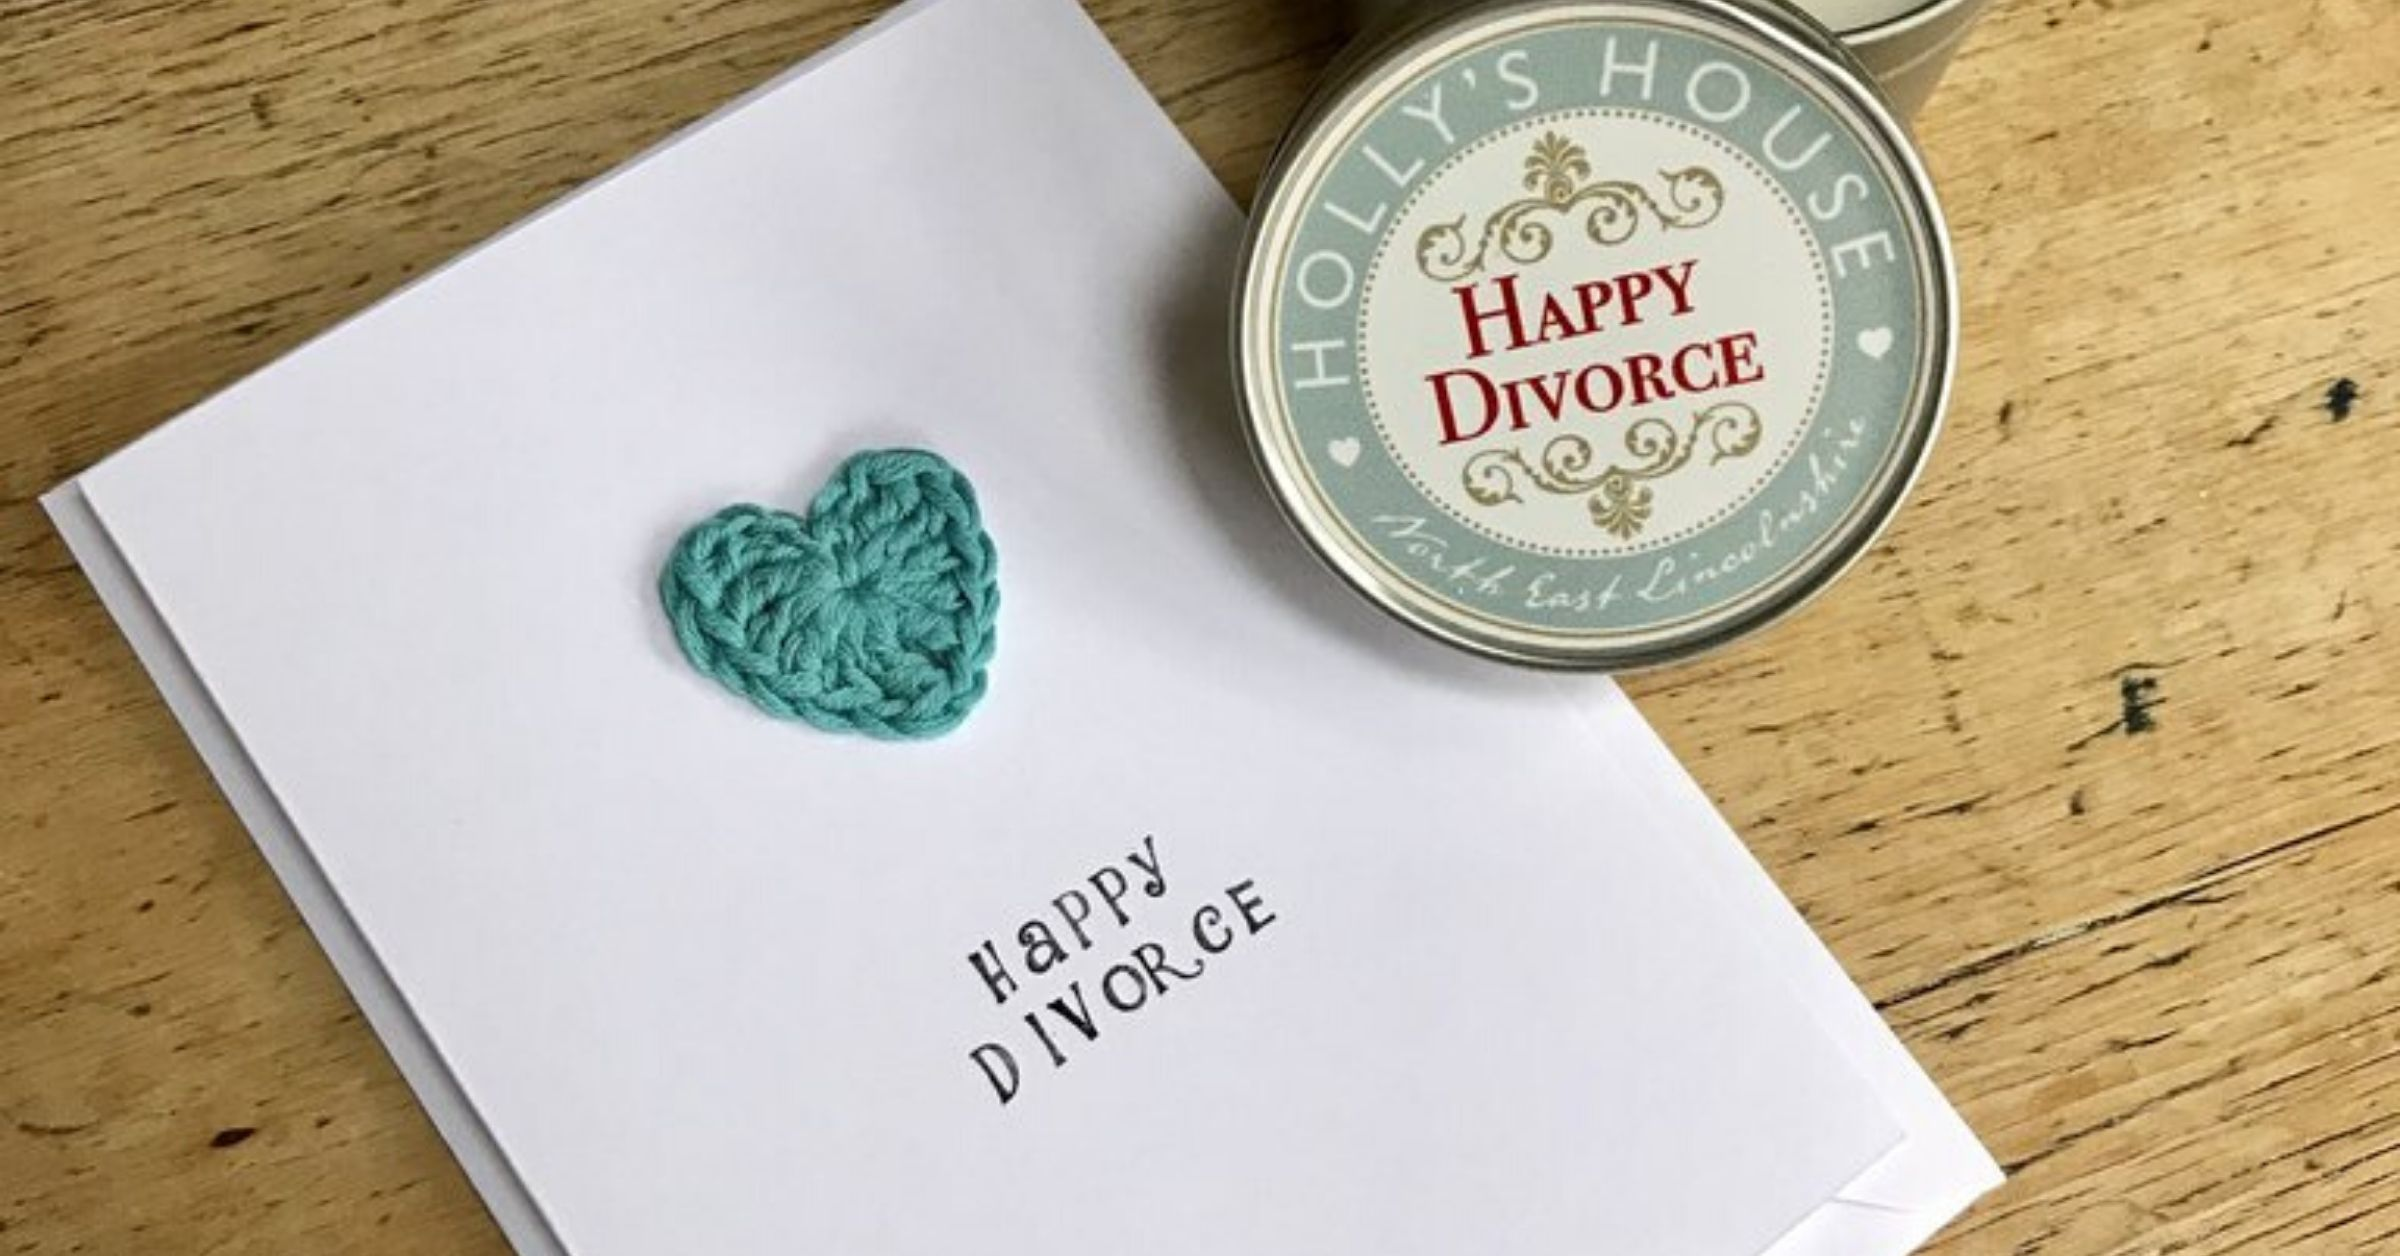 Crochet Cards for Holly's House - Happy Divorce